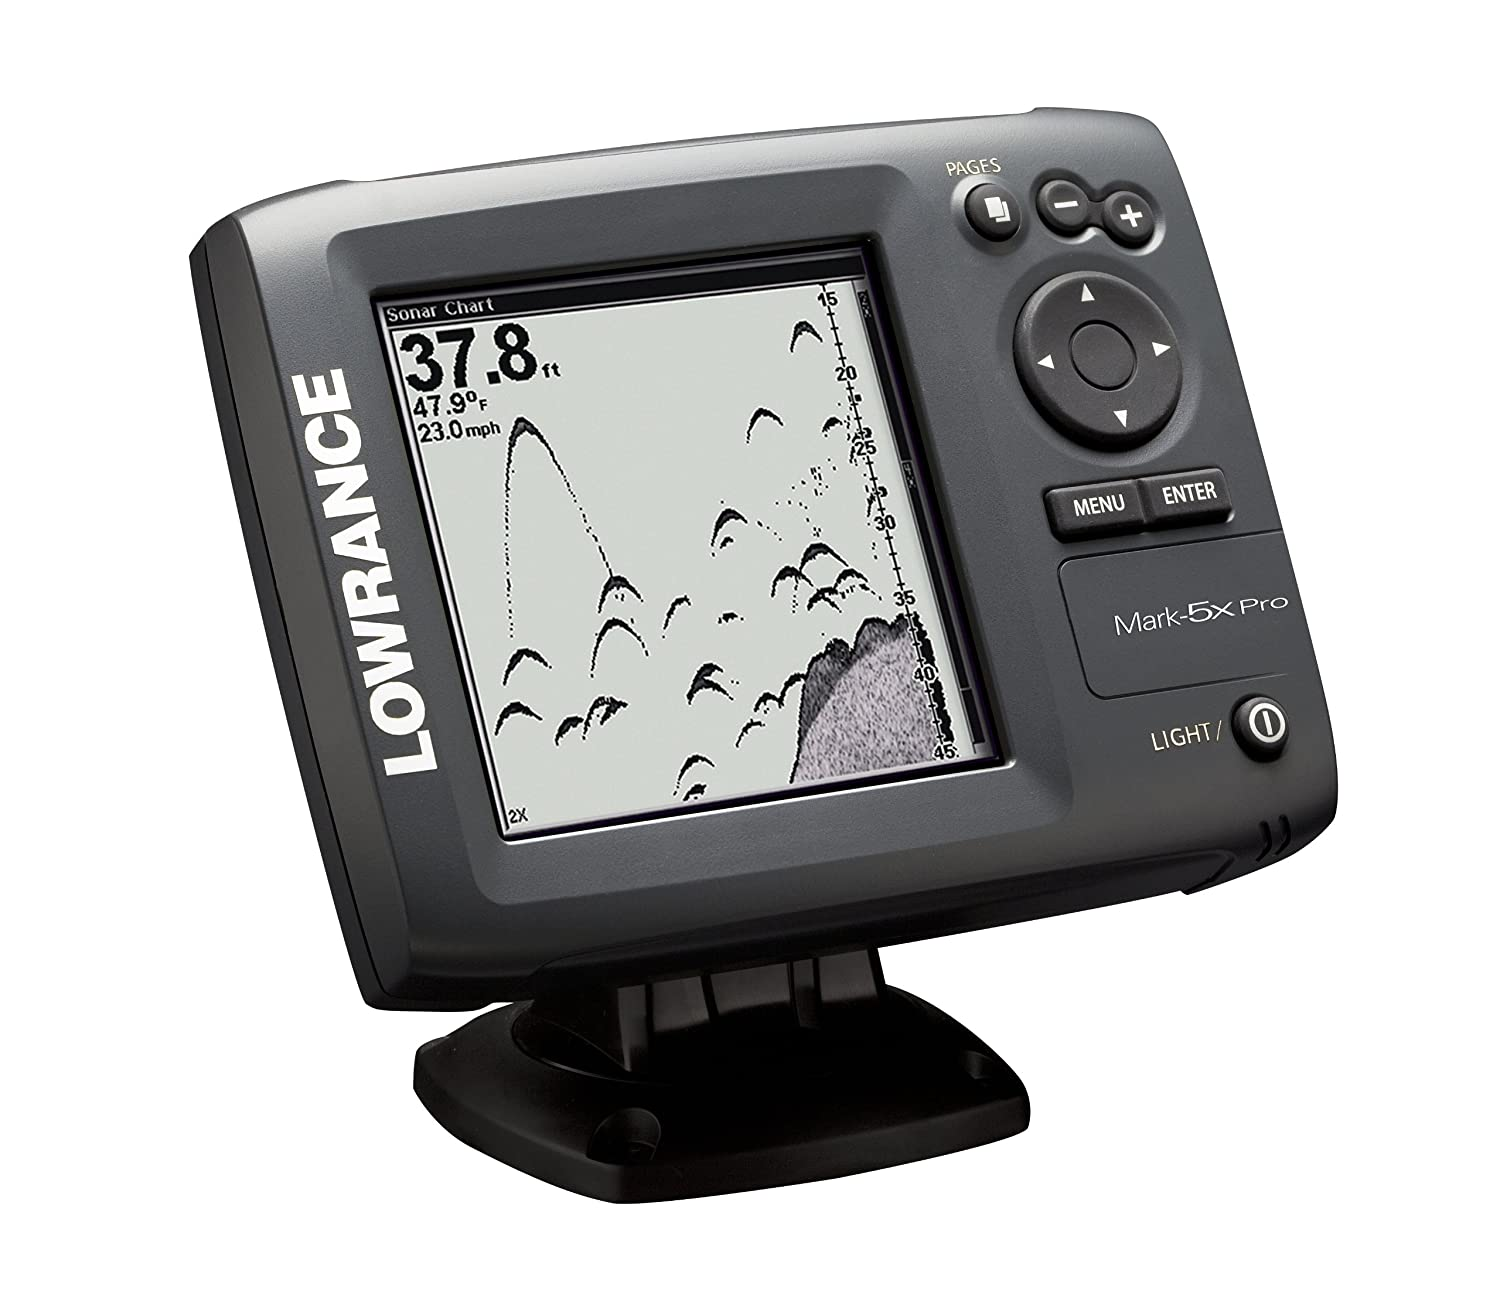 Lowrance Mark 5x Pro 5 Inch Waterproof Fishfinder Cell Sitex Transducer Wiring Diagram Colors Phones Accessories